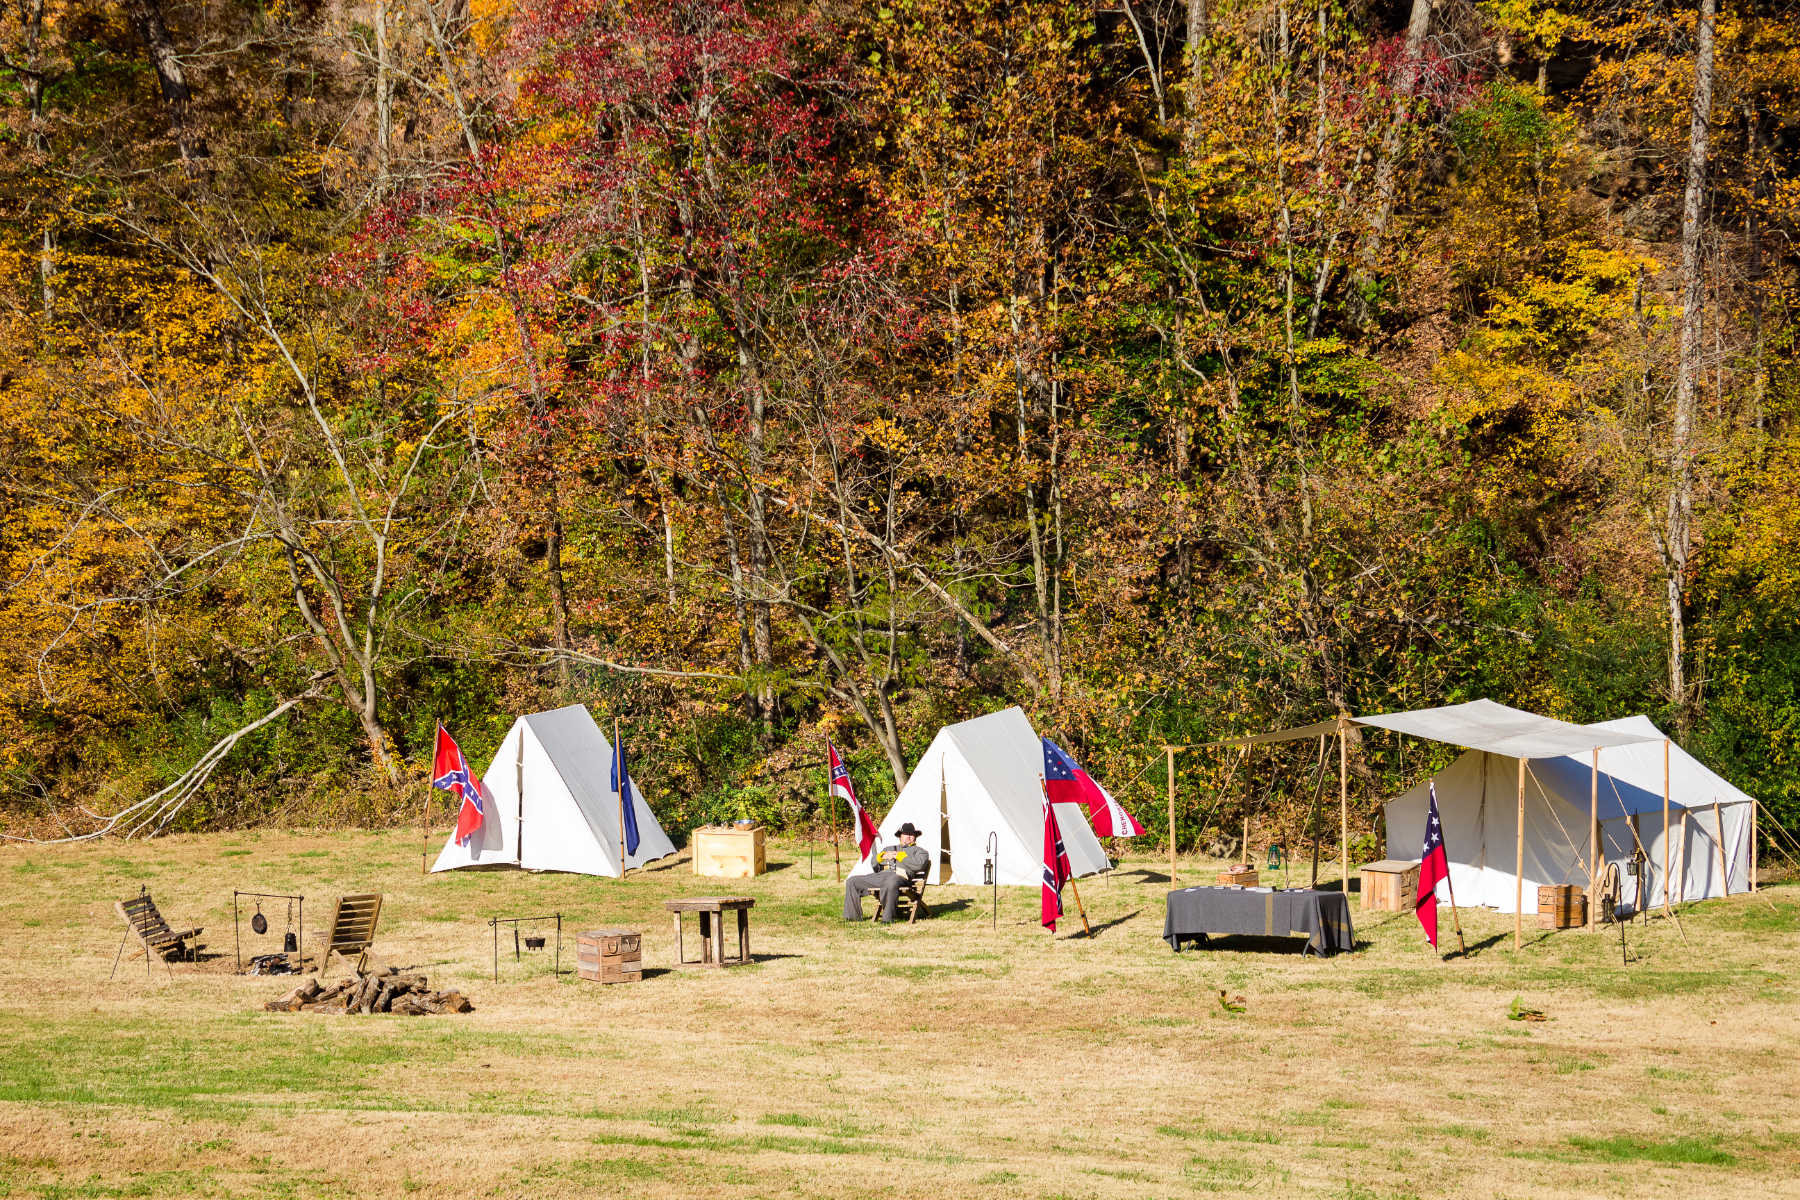 Old camp site reenactment of the civil war.